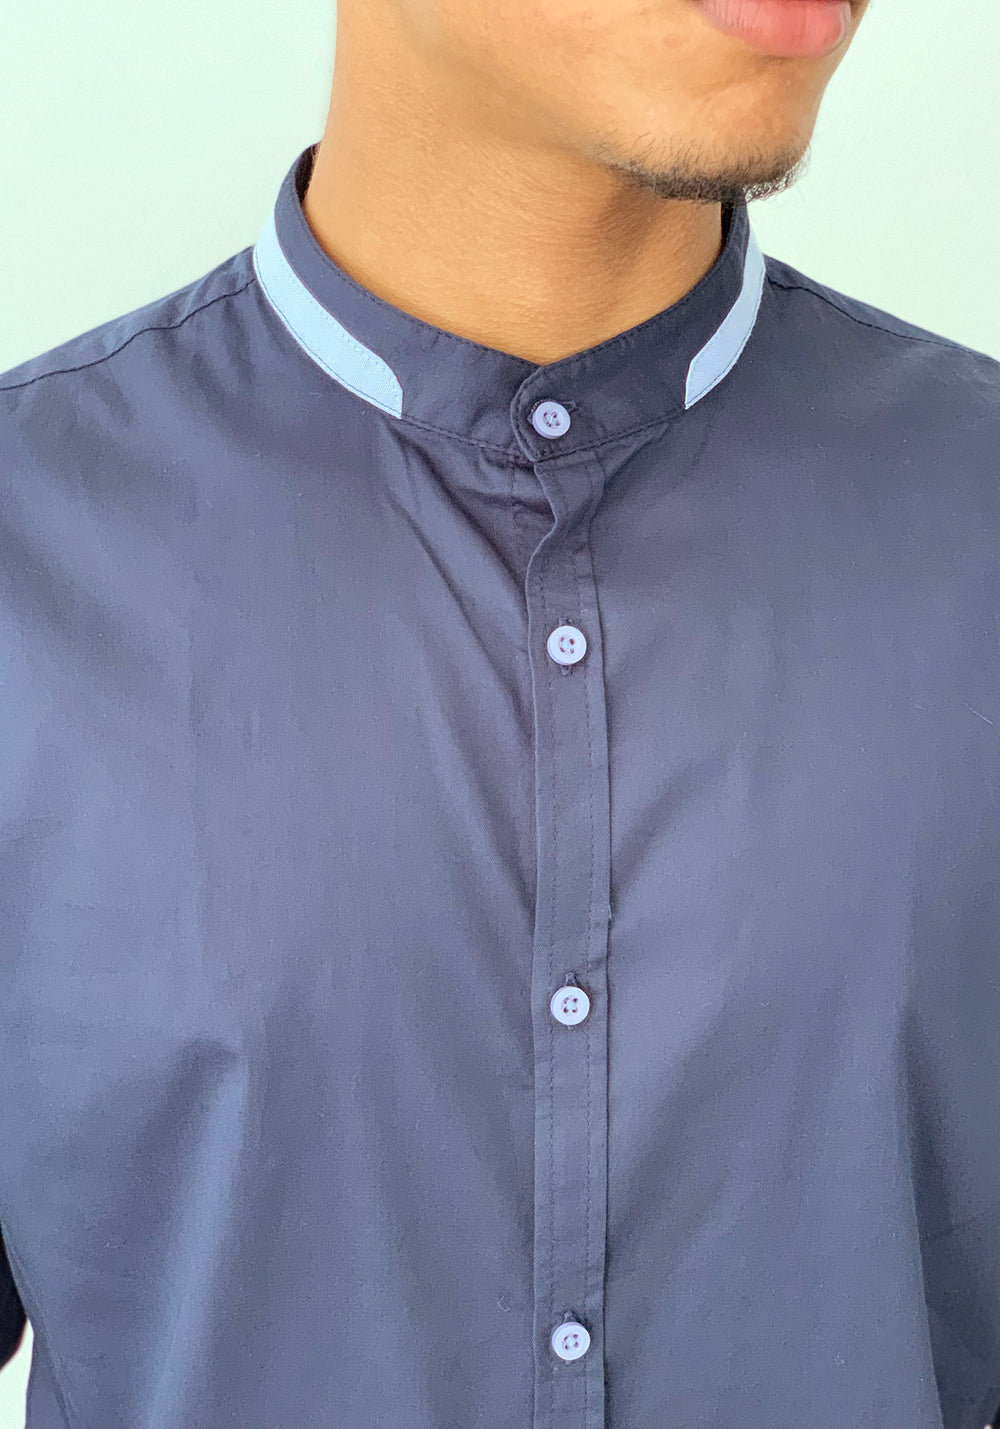 LONG SLEEVED SHIRT WITH SLEEVE PATCHES